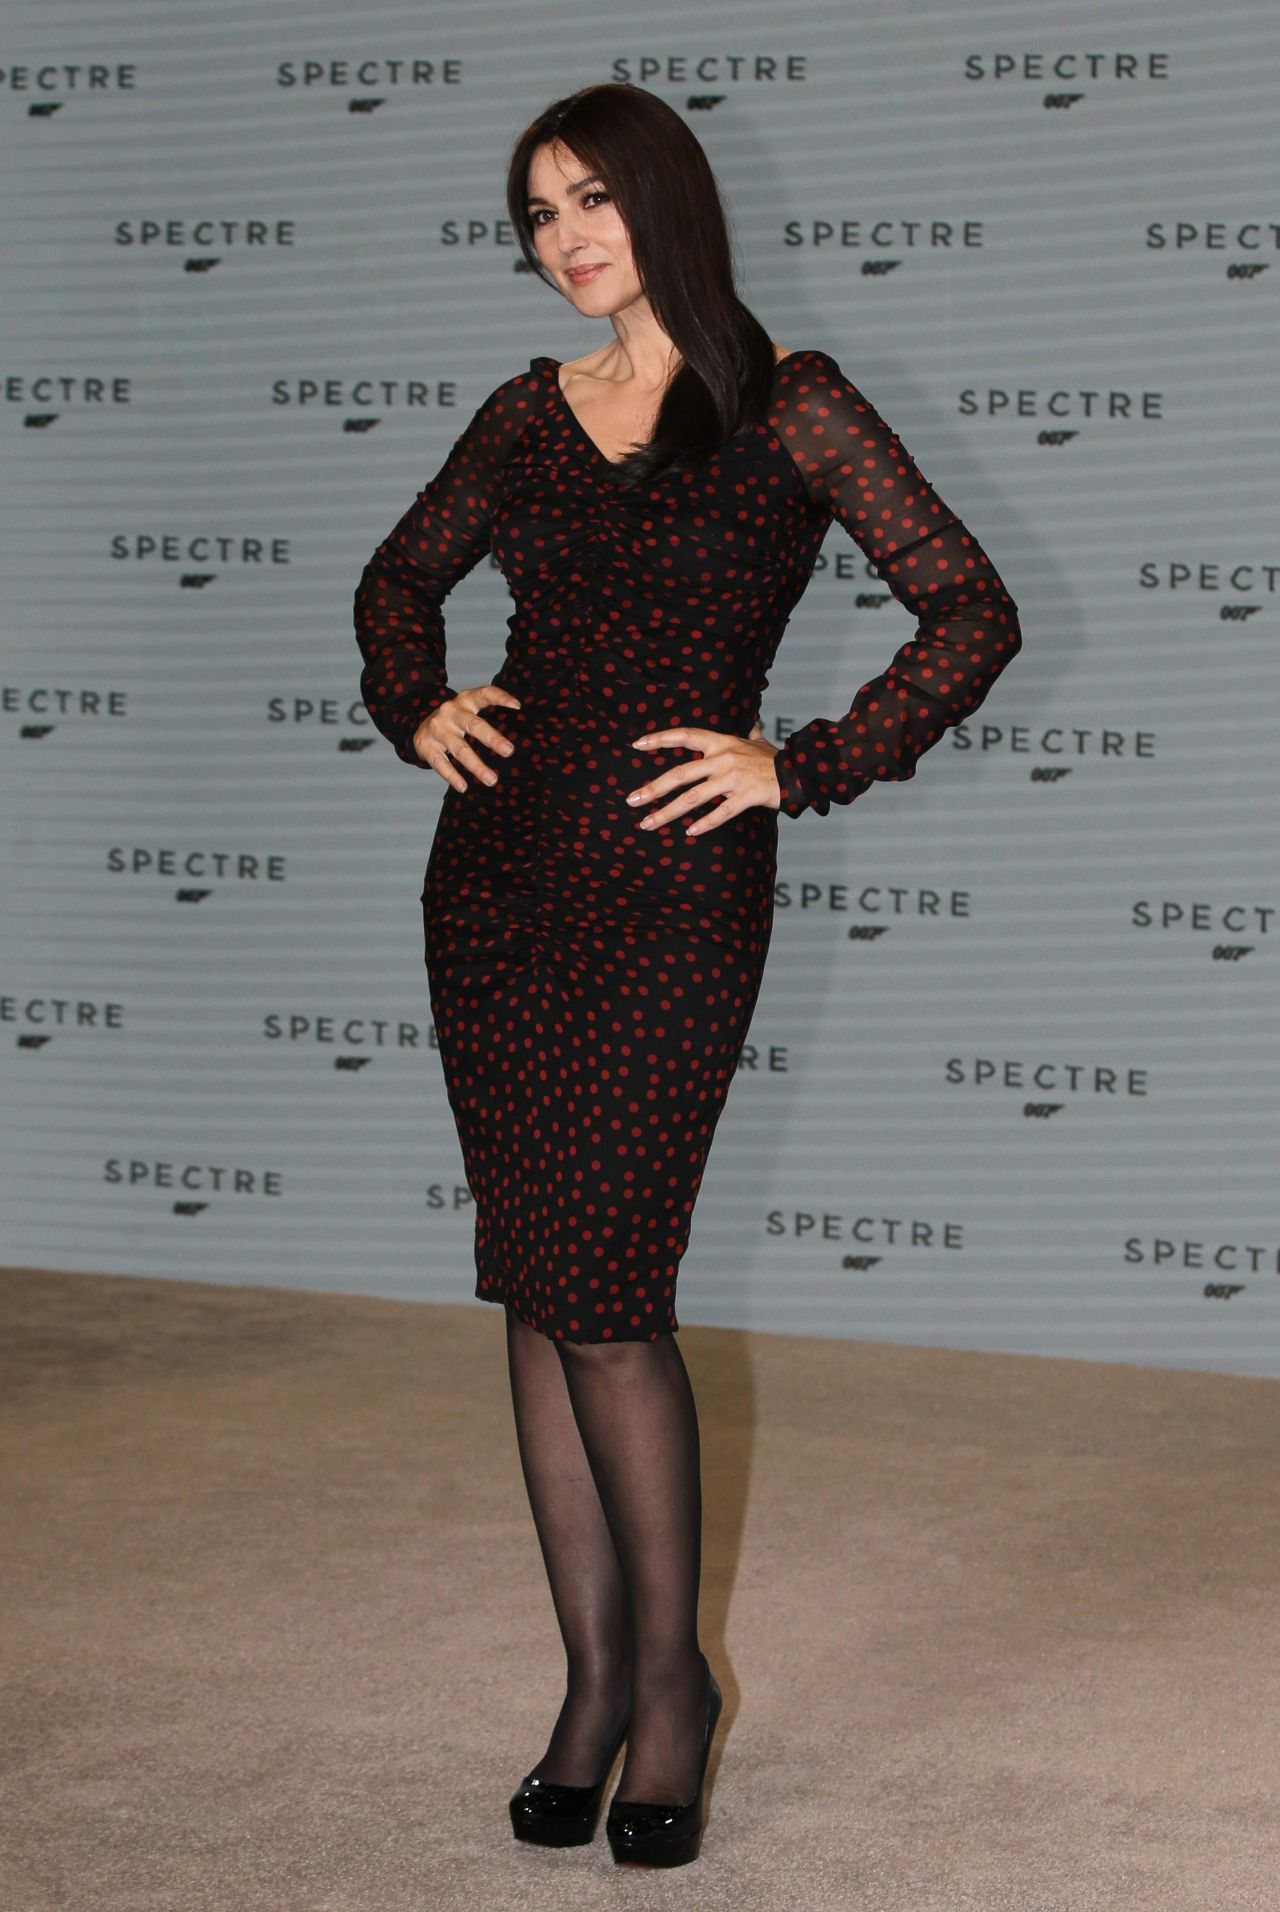 monica-bellucci-photocall-for-the-24th-bond-film-spectre-december-2014_12